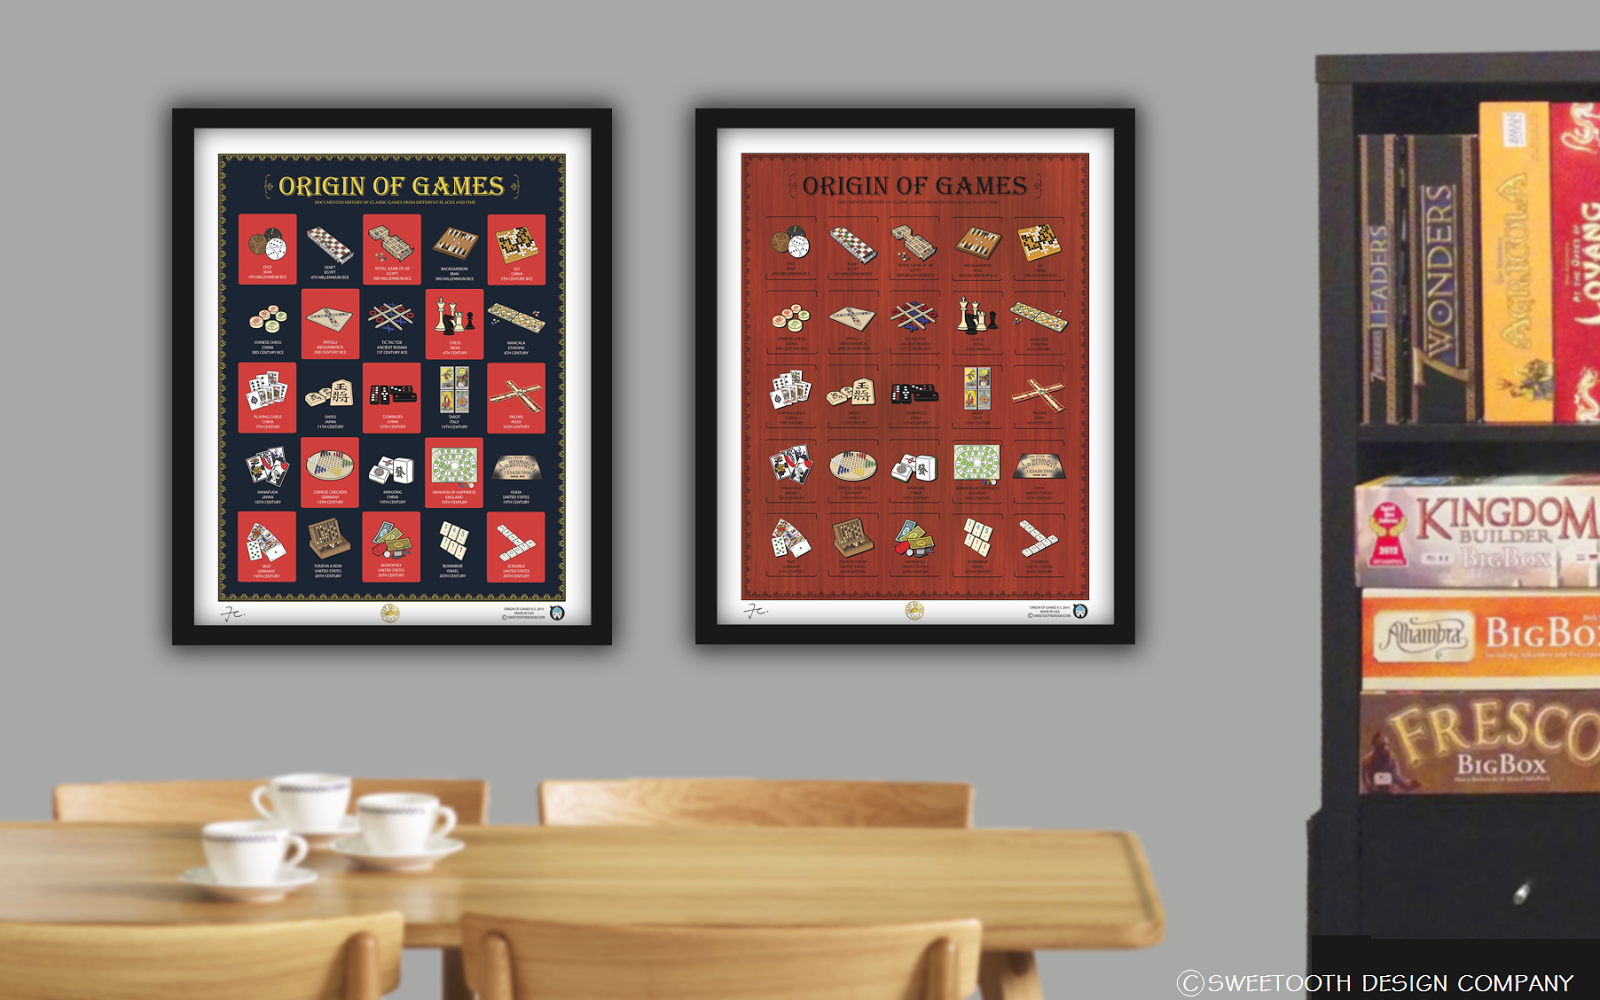 https://www.kickstarter.com/projects/sweetoothdesign/origin-of-games-illustrated-poster-of-classic-game